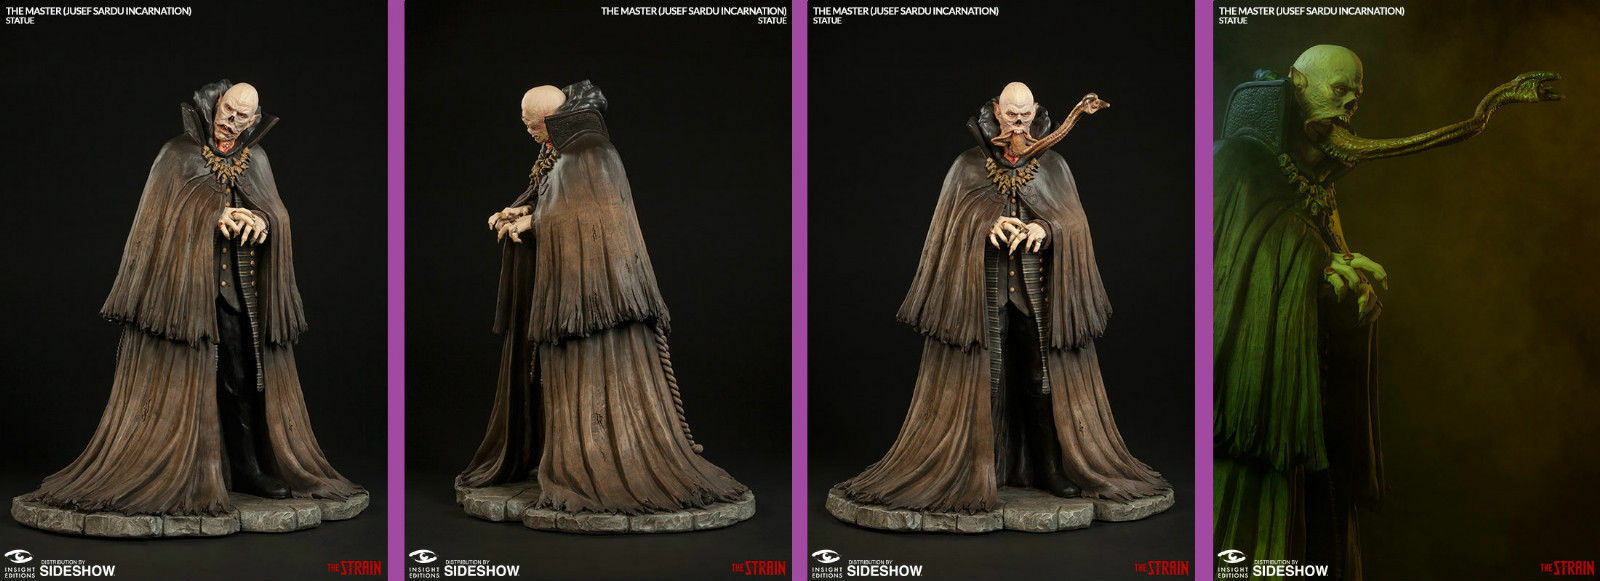 Sideshow Insight Collectibles The Strain Statue - The Master - Jusef Sardu 1/5